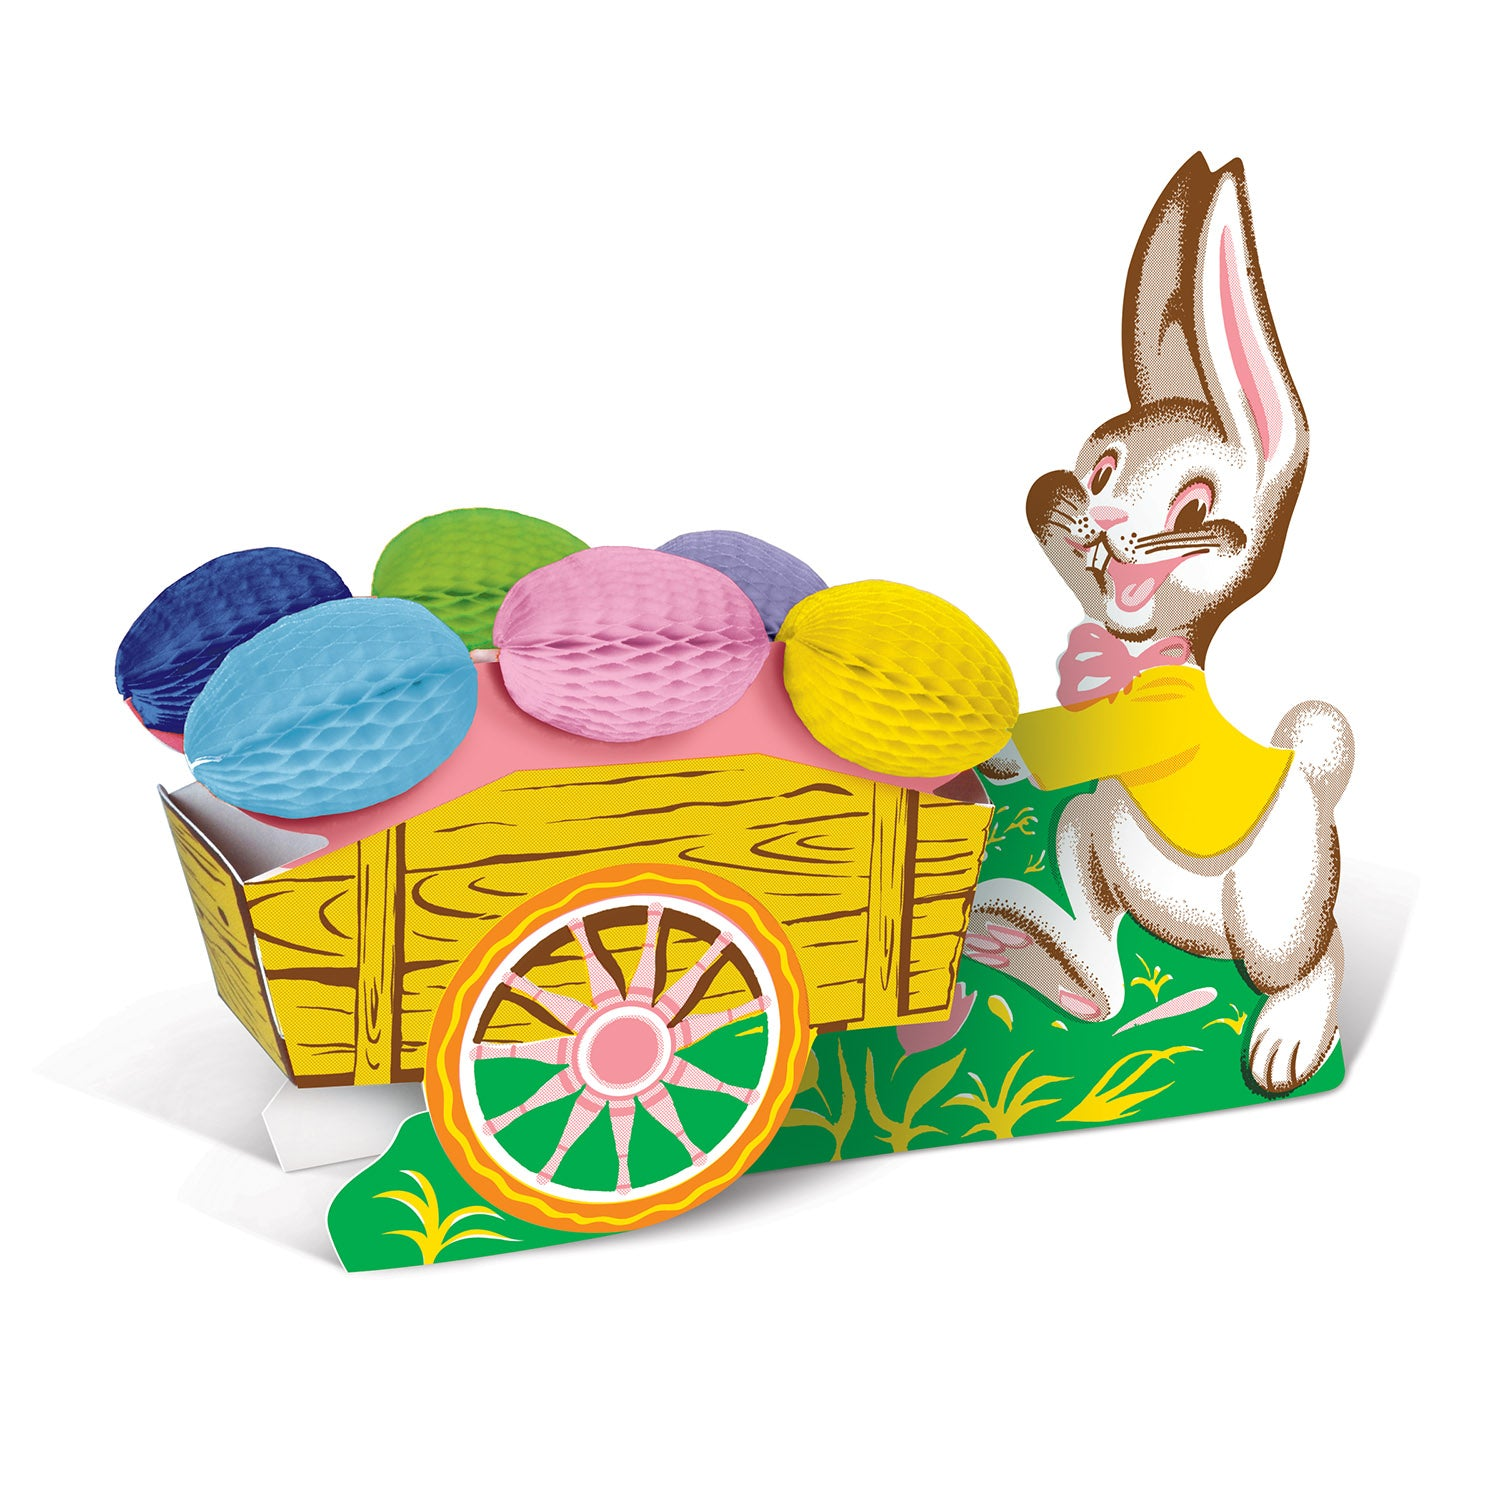 Vintage Easter Bunny w/Cart by Beistle - Easter Theme Decorations